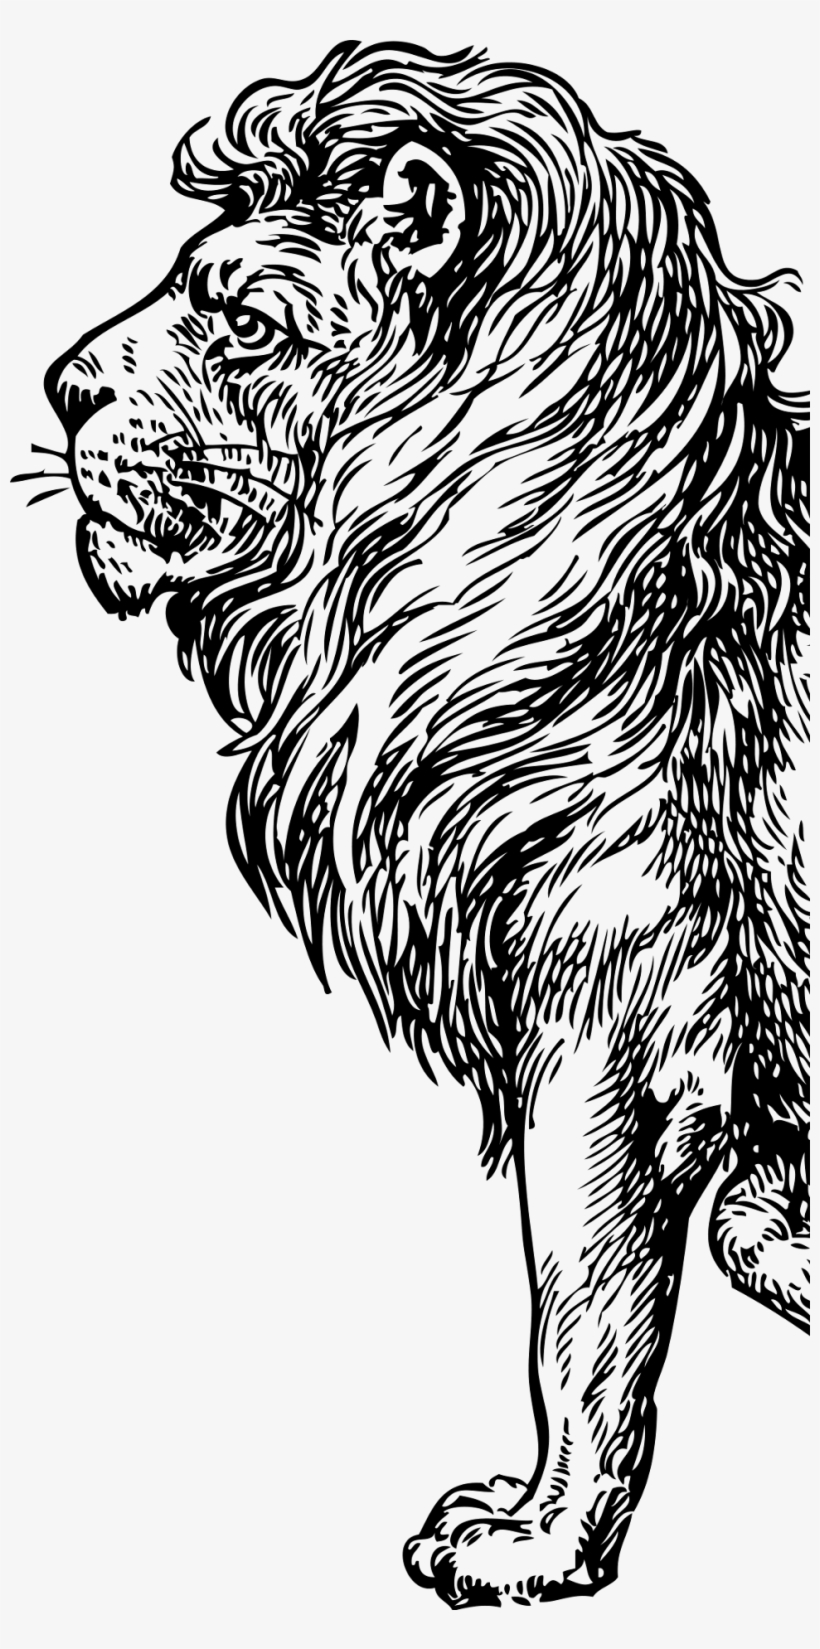 Vision Lion Lion Full Body Drawing Png Image Transparent